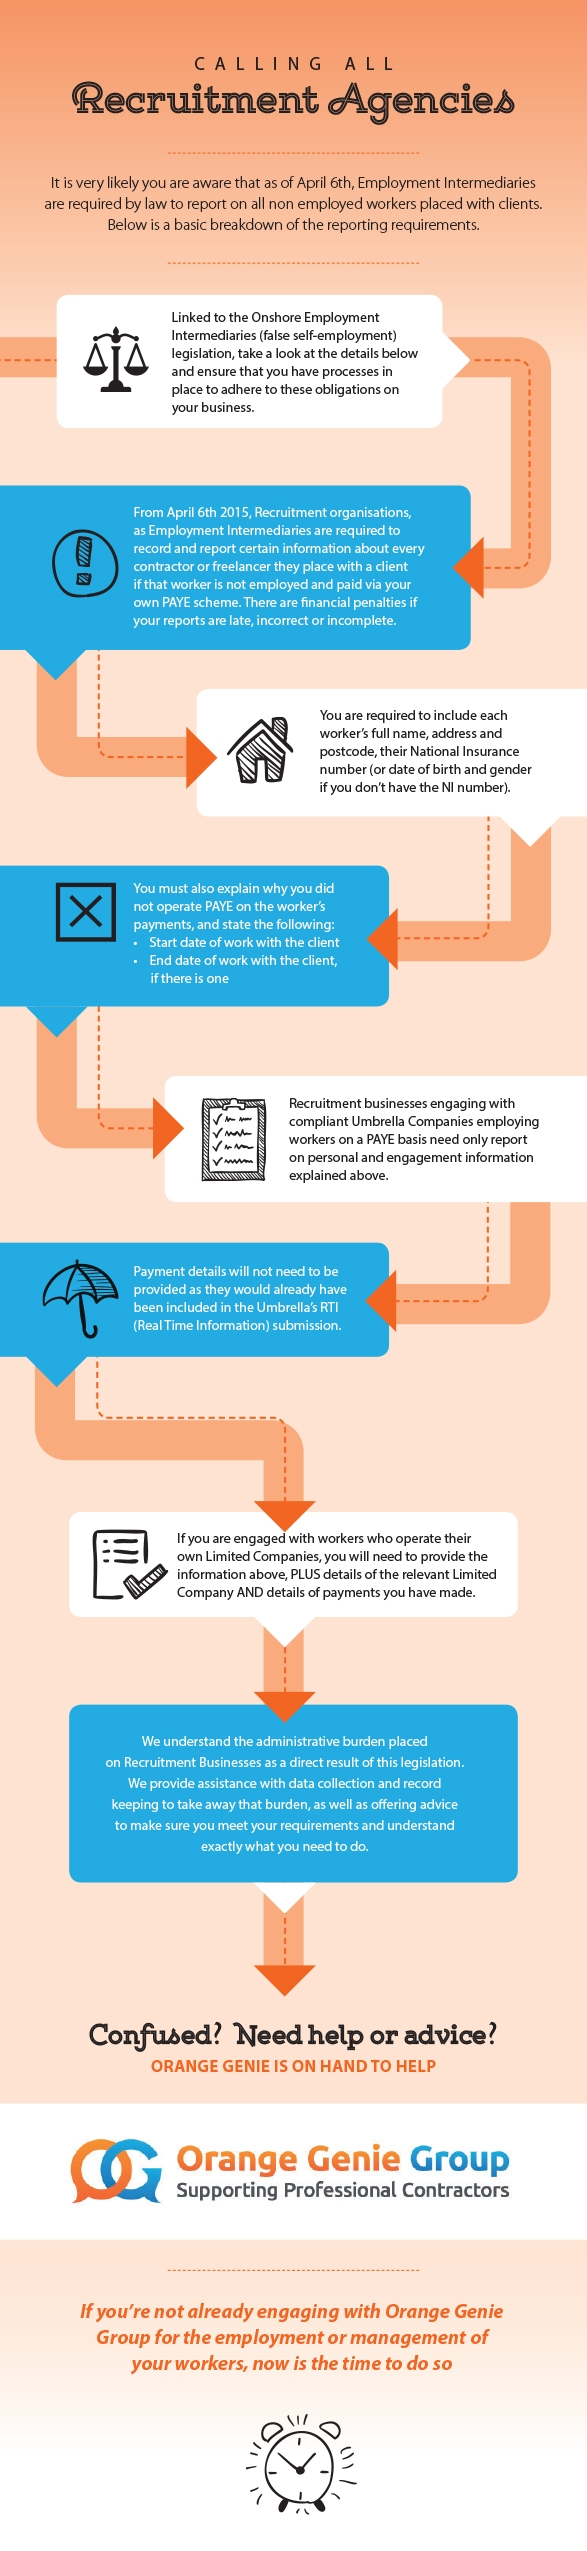 Reporting_requirements_infographic_Final-475699-edited